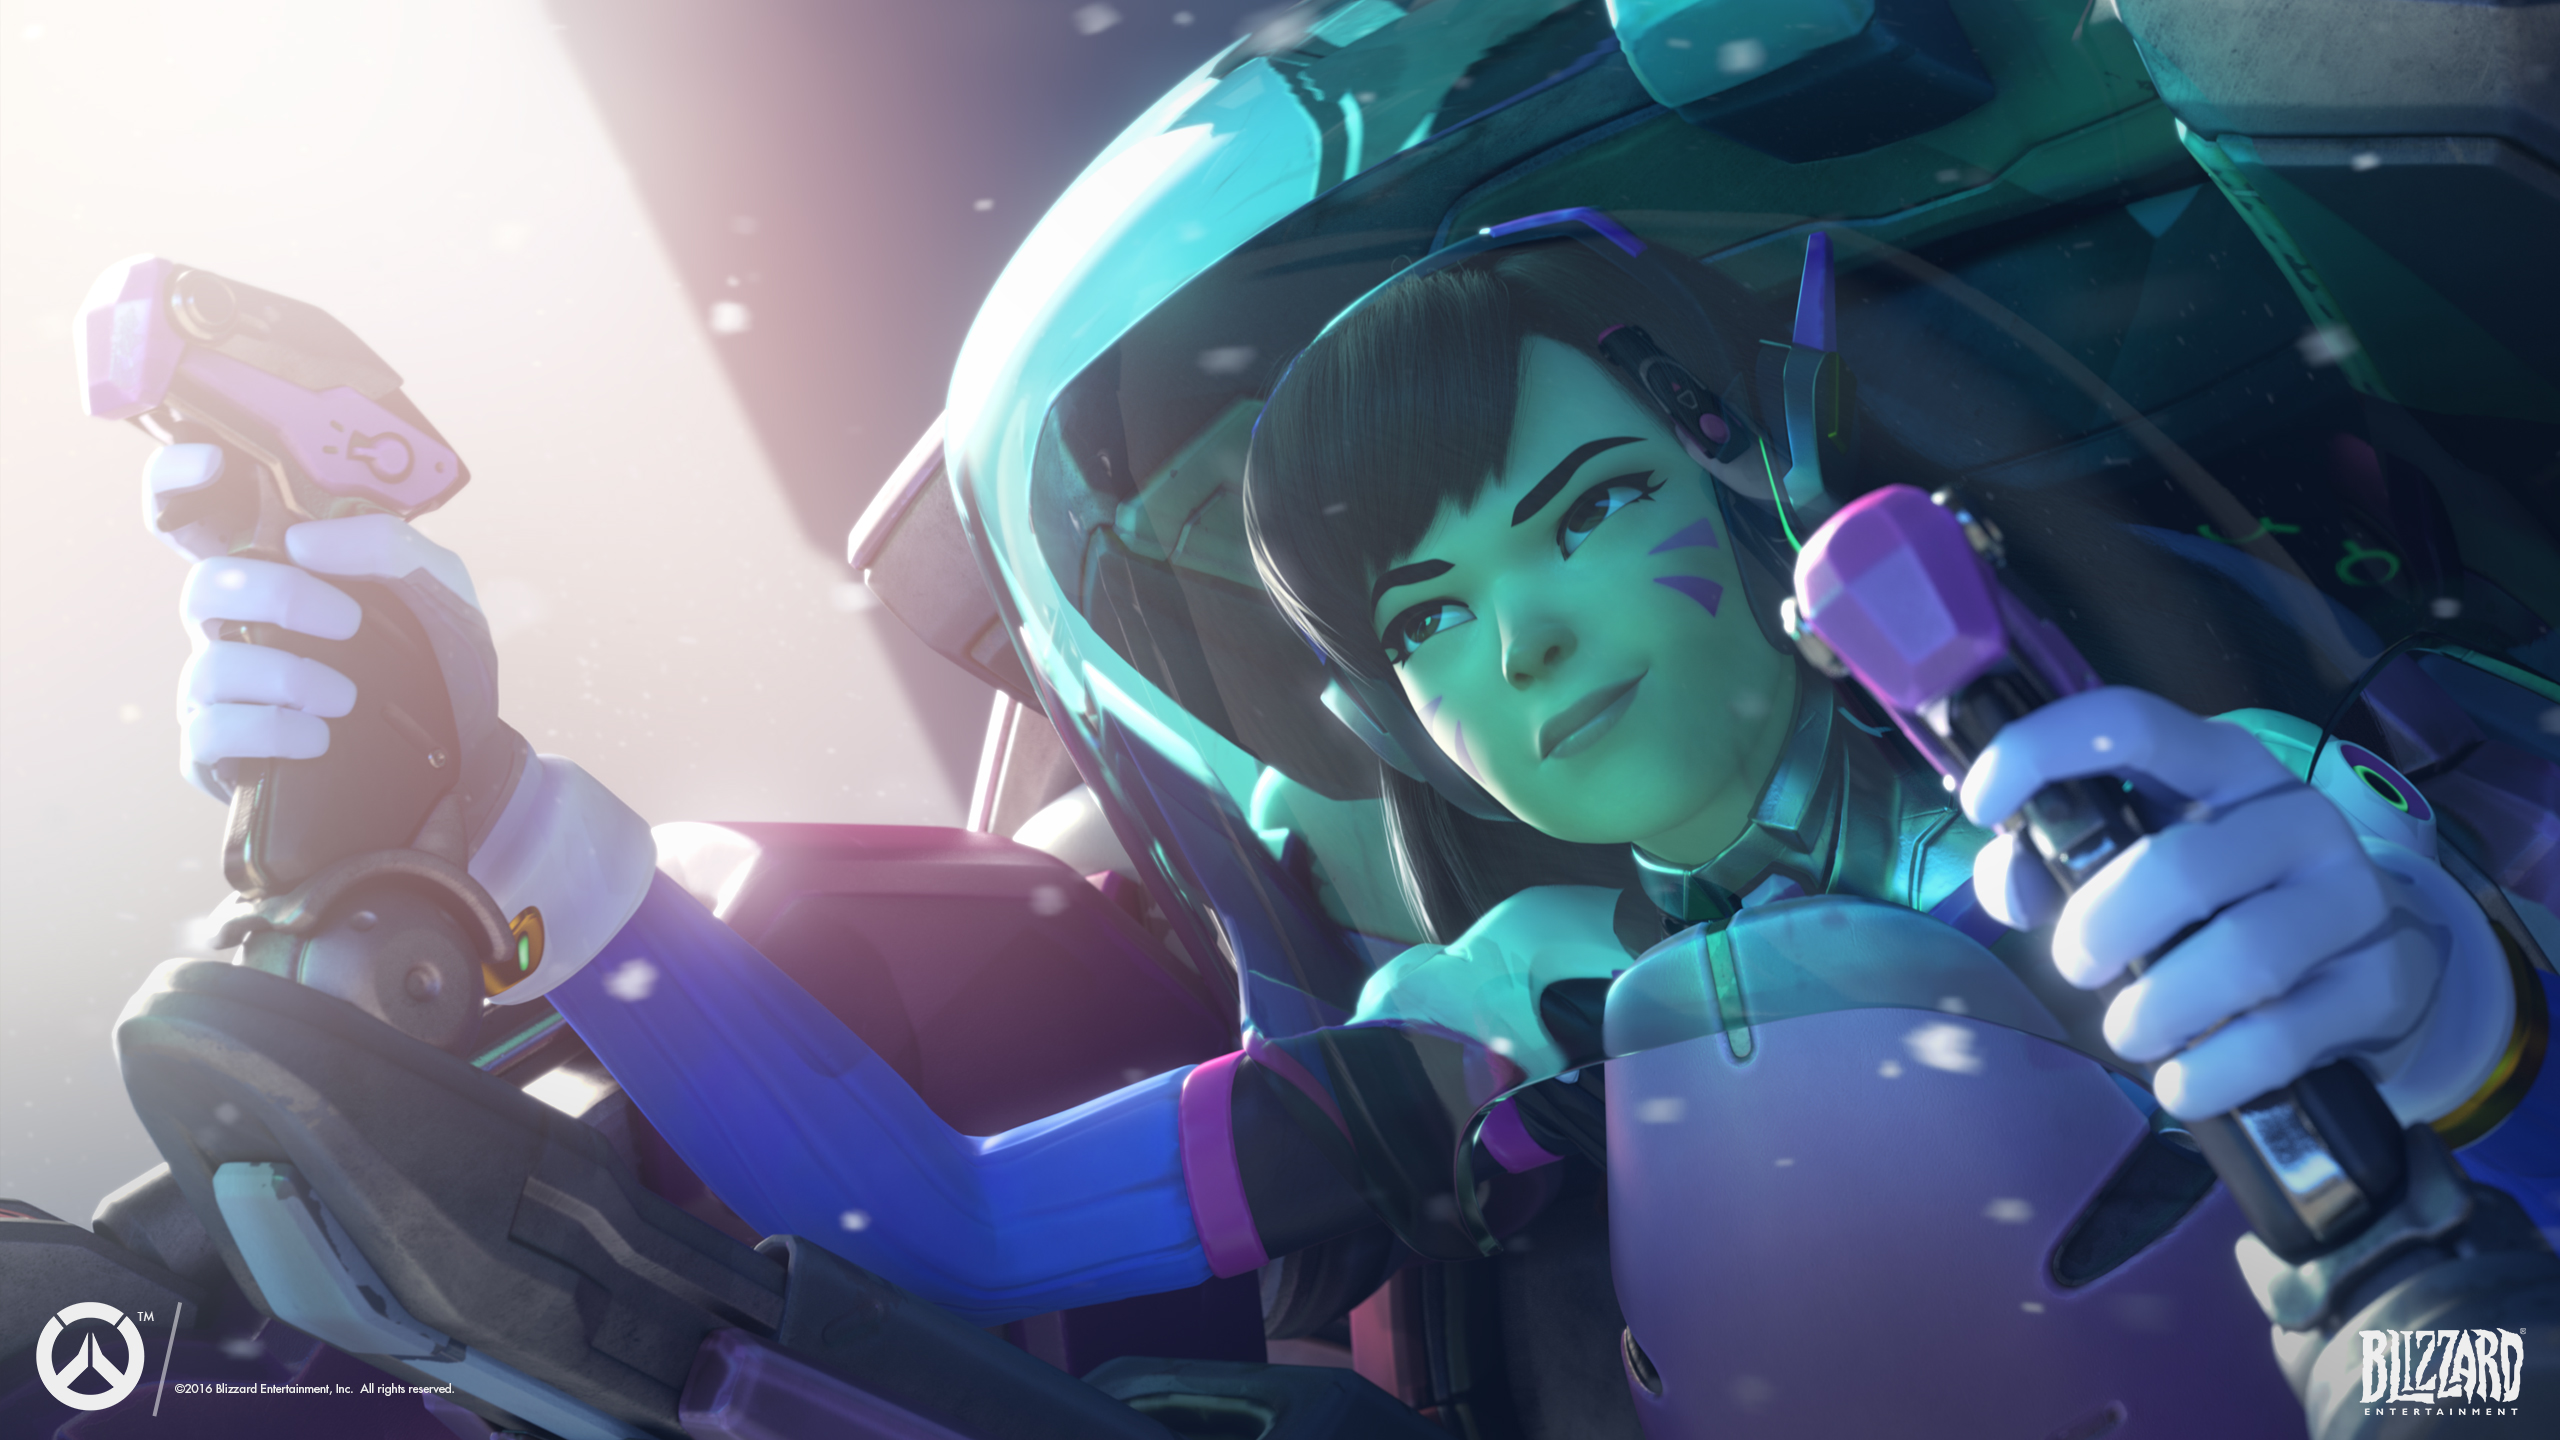 It's time for Overwatch to go free-to-play - The Verge